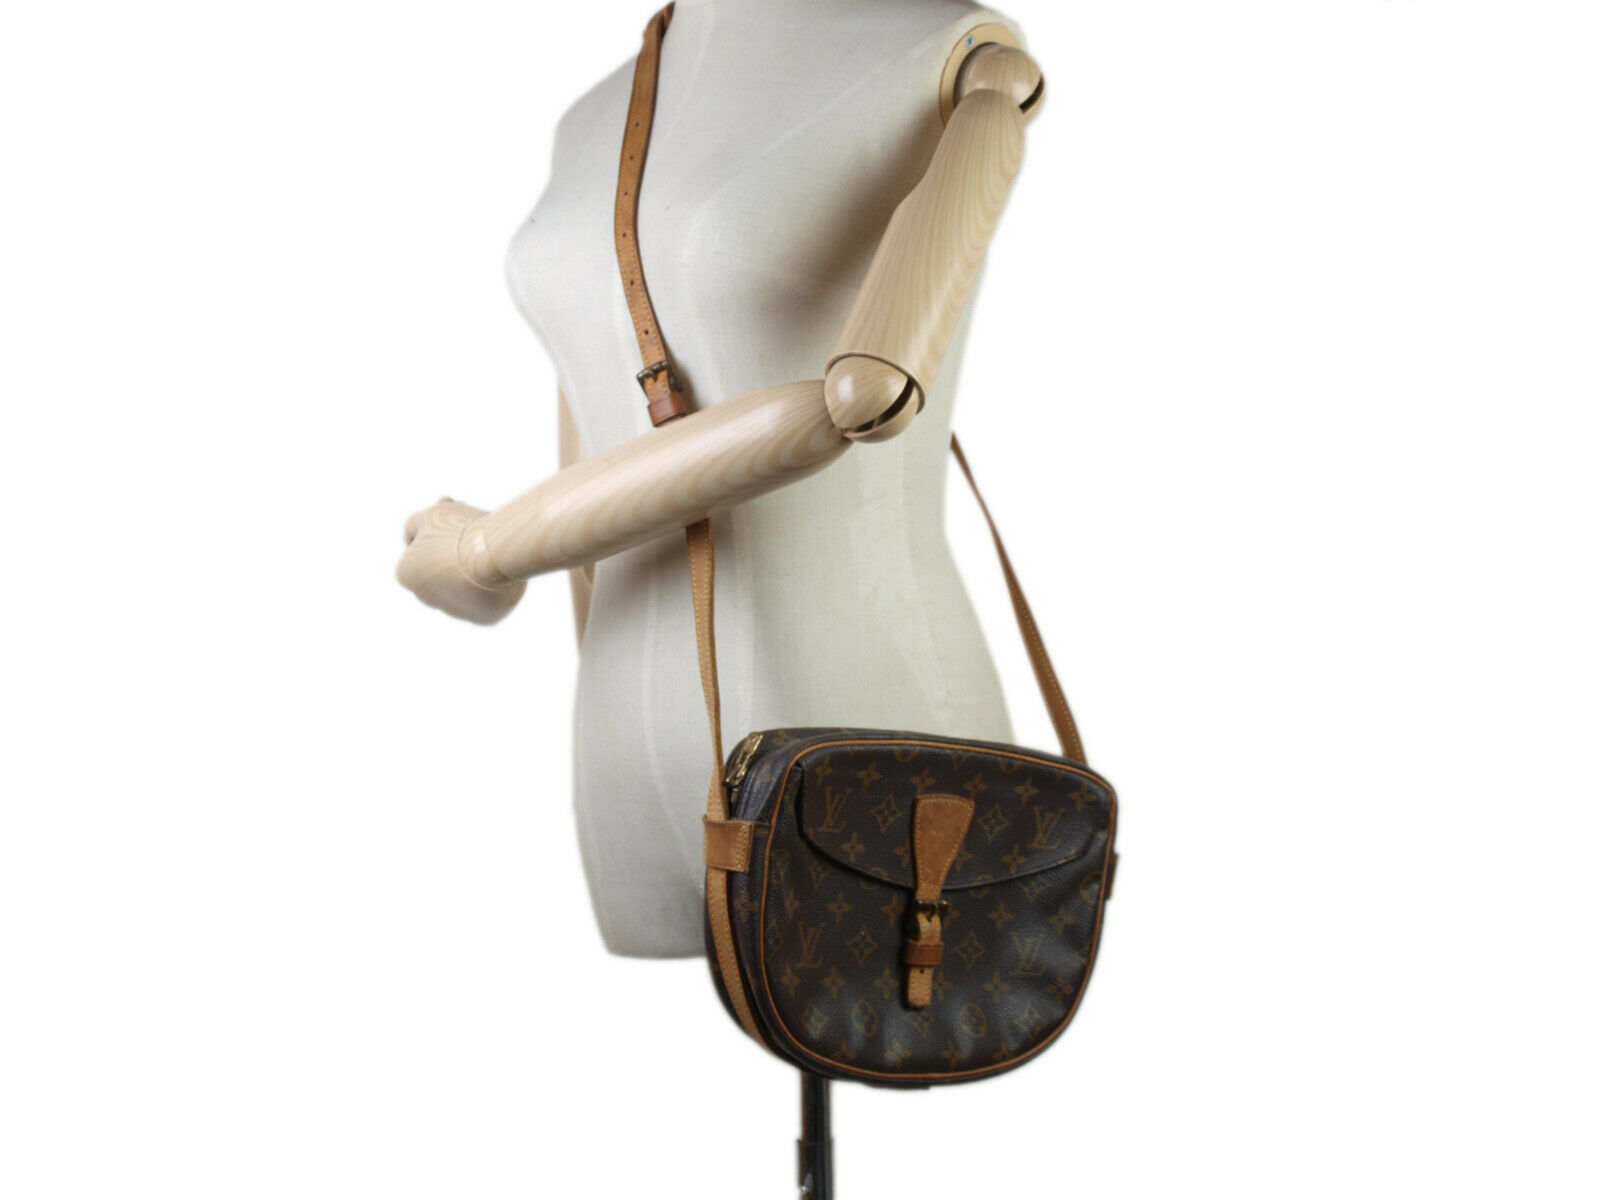 Auth LOUIS VUITTON Jeune Fille Monogram Canvas Cross-Body Shoulder Bag LS17666L